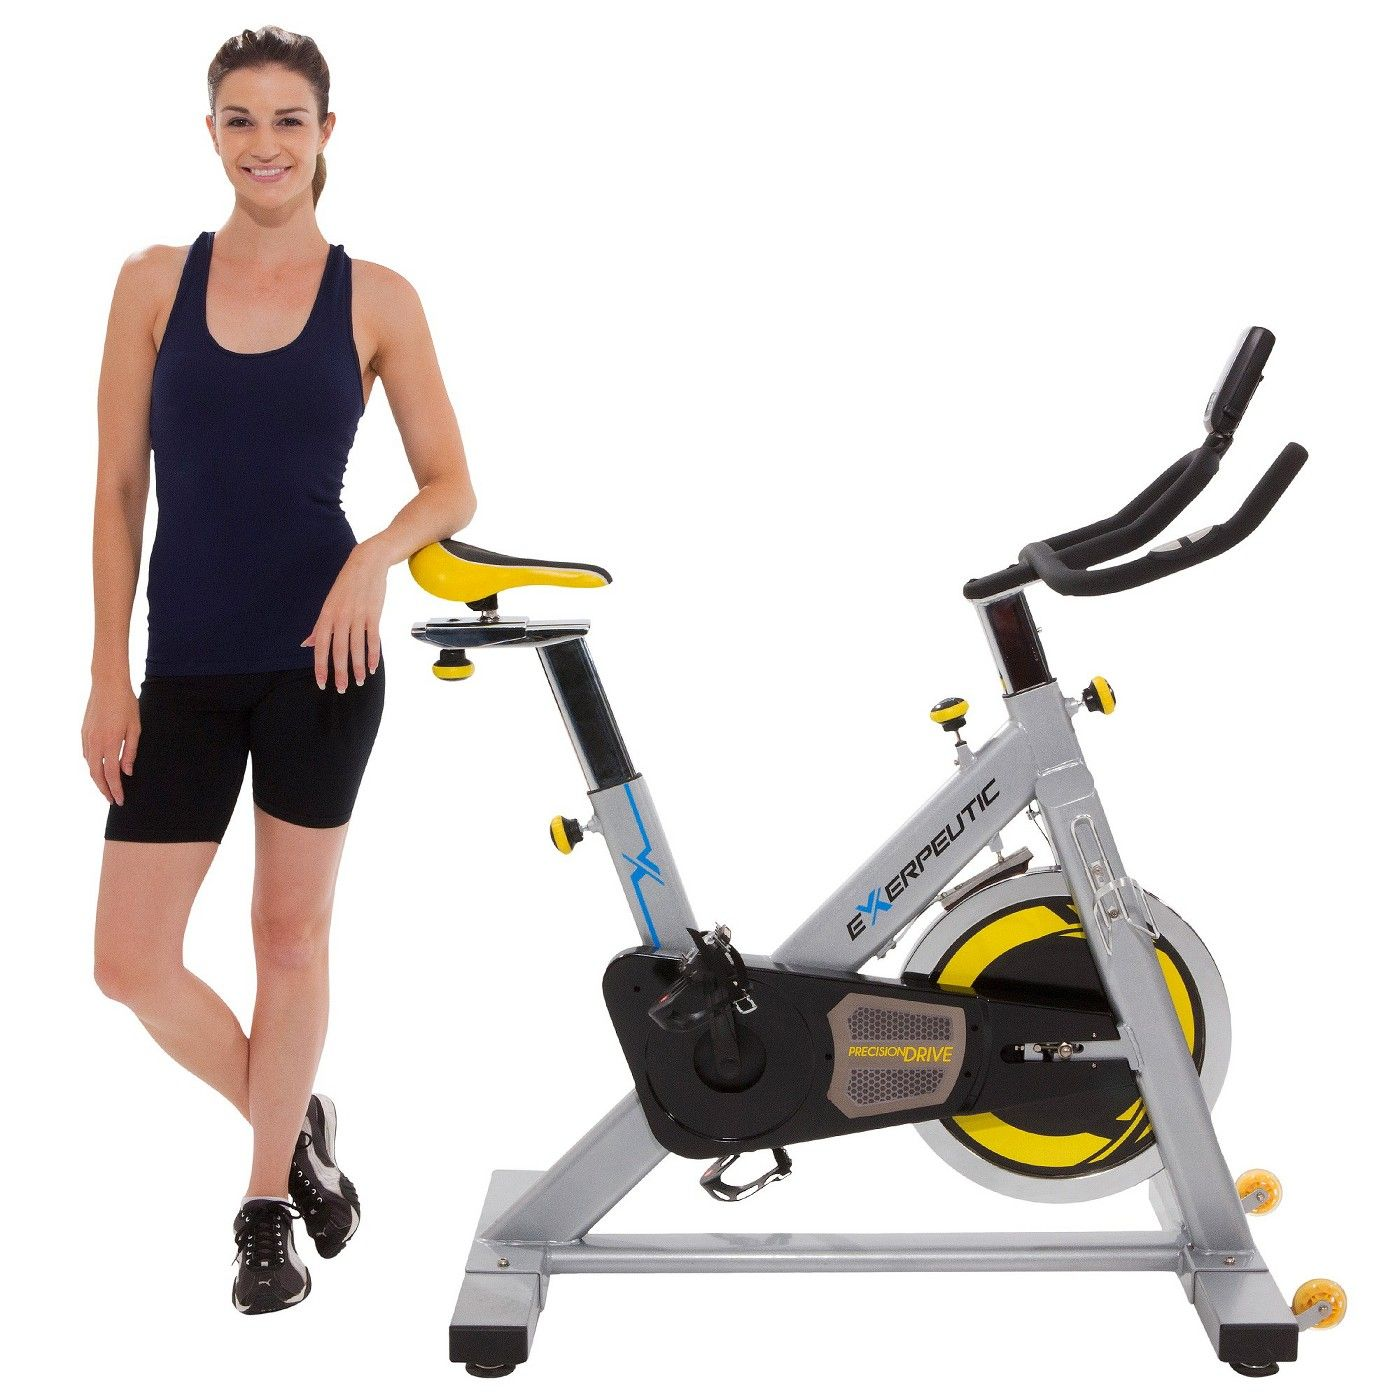 Exerpeutic Lx905 Stationary Upright Training Bicycle Affiliate